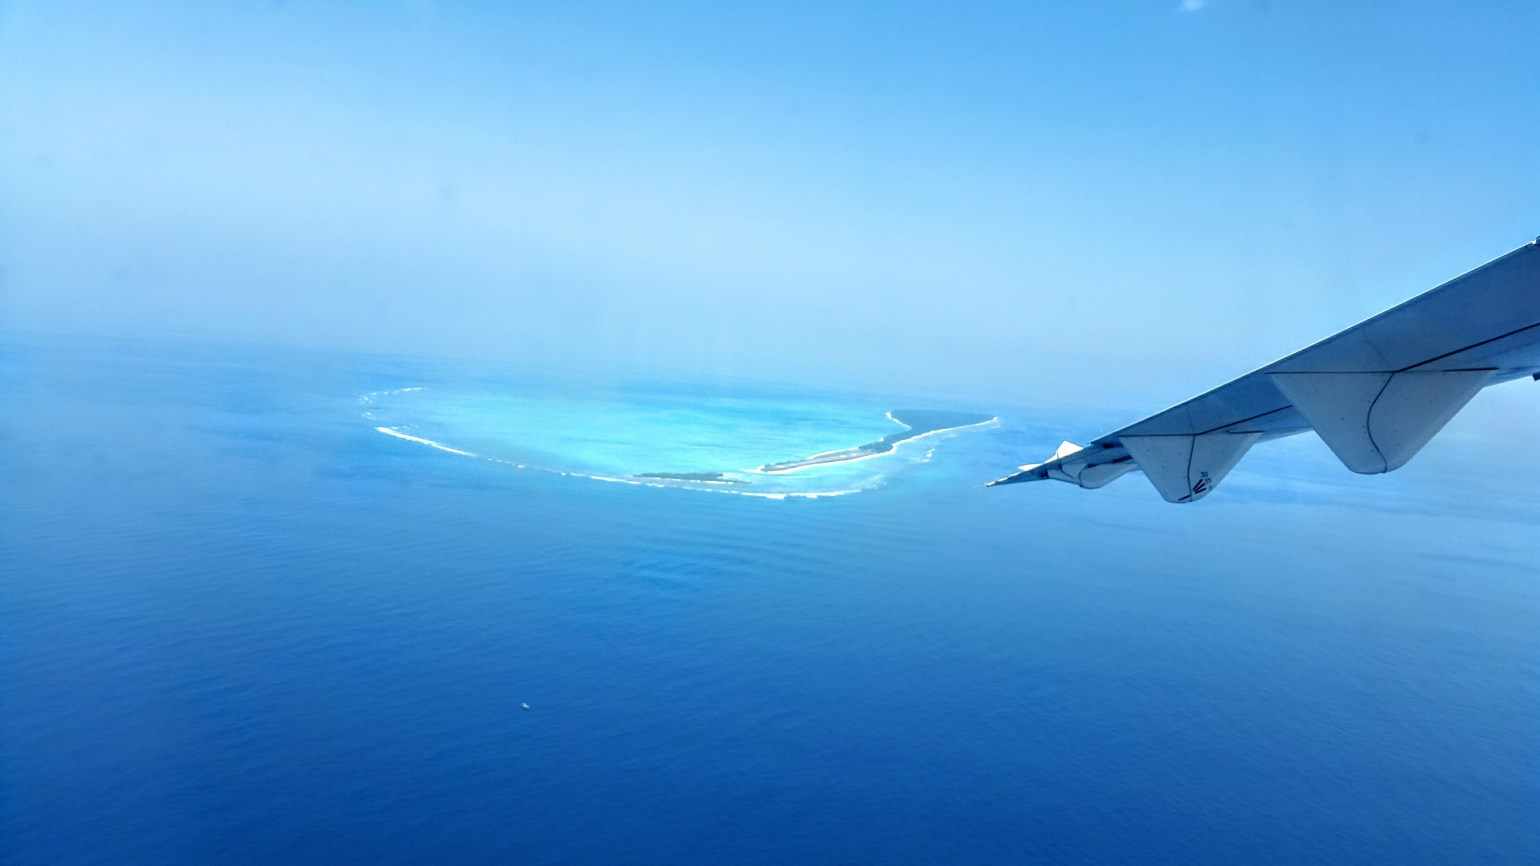 Agatti island from above in Lakshadweep, India